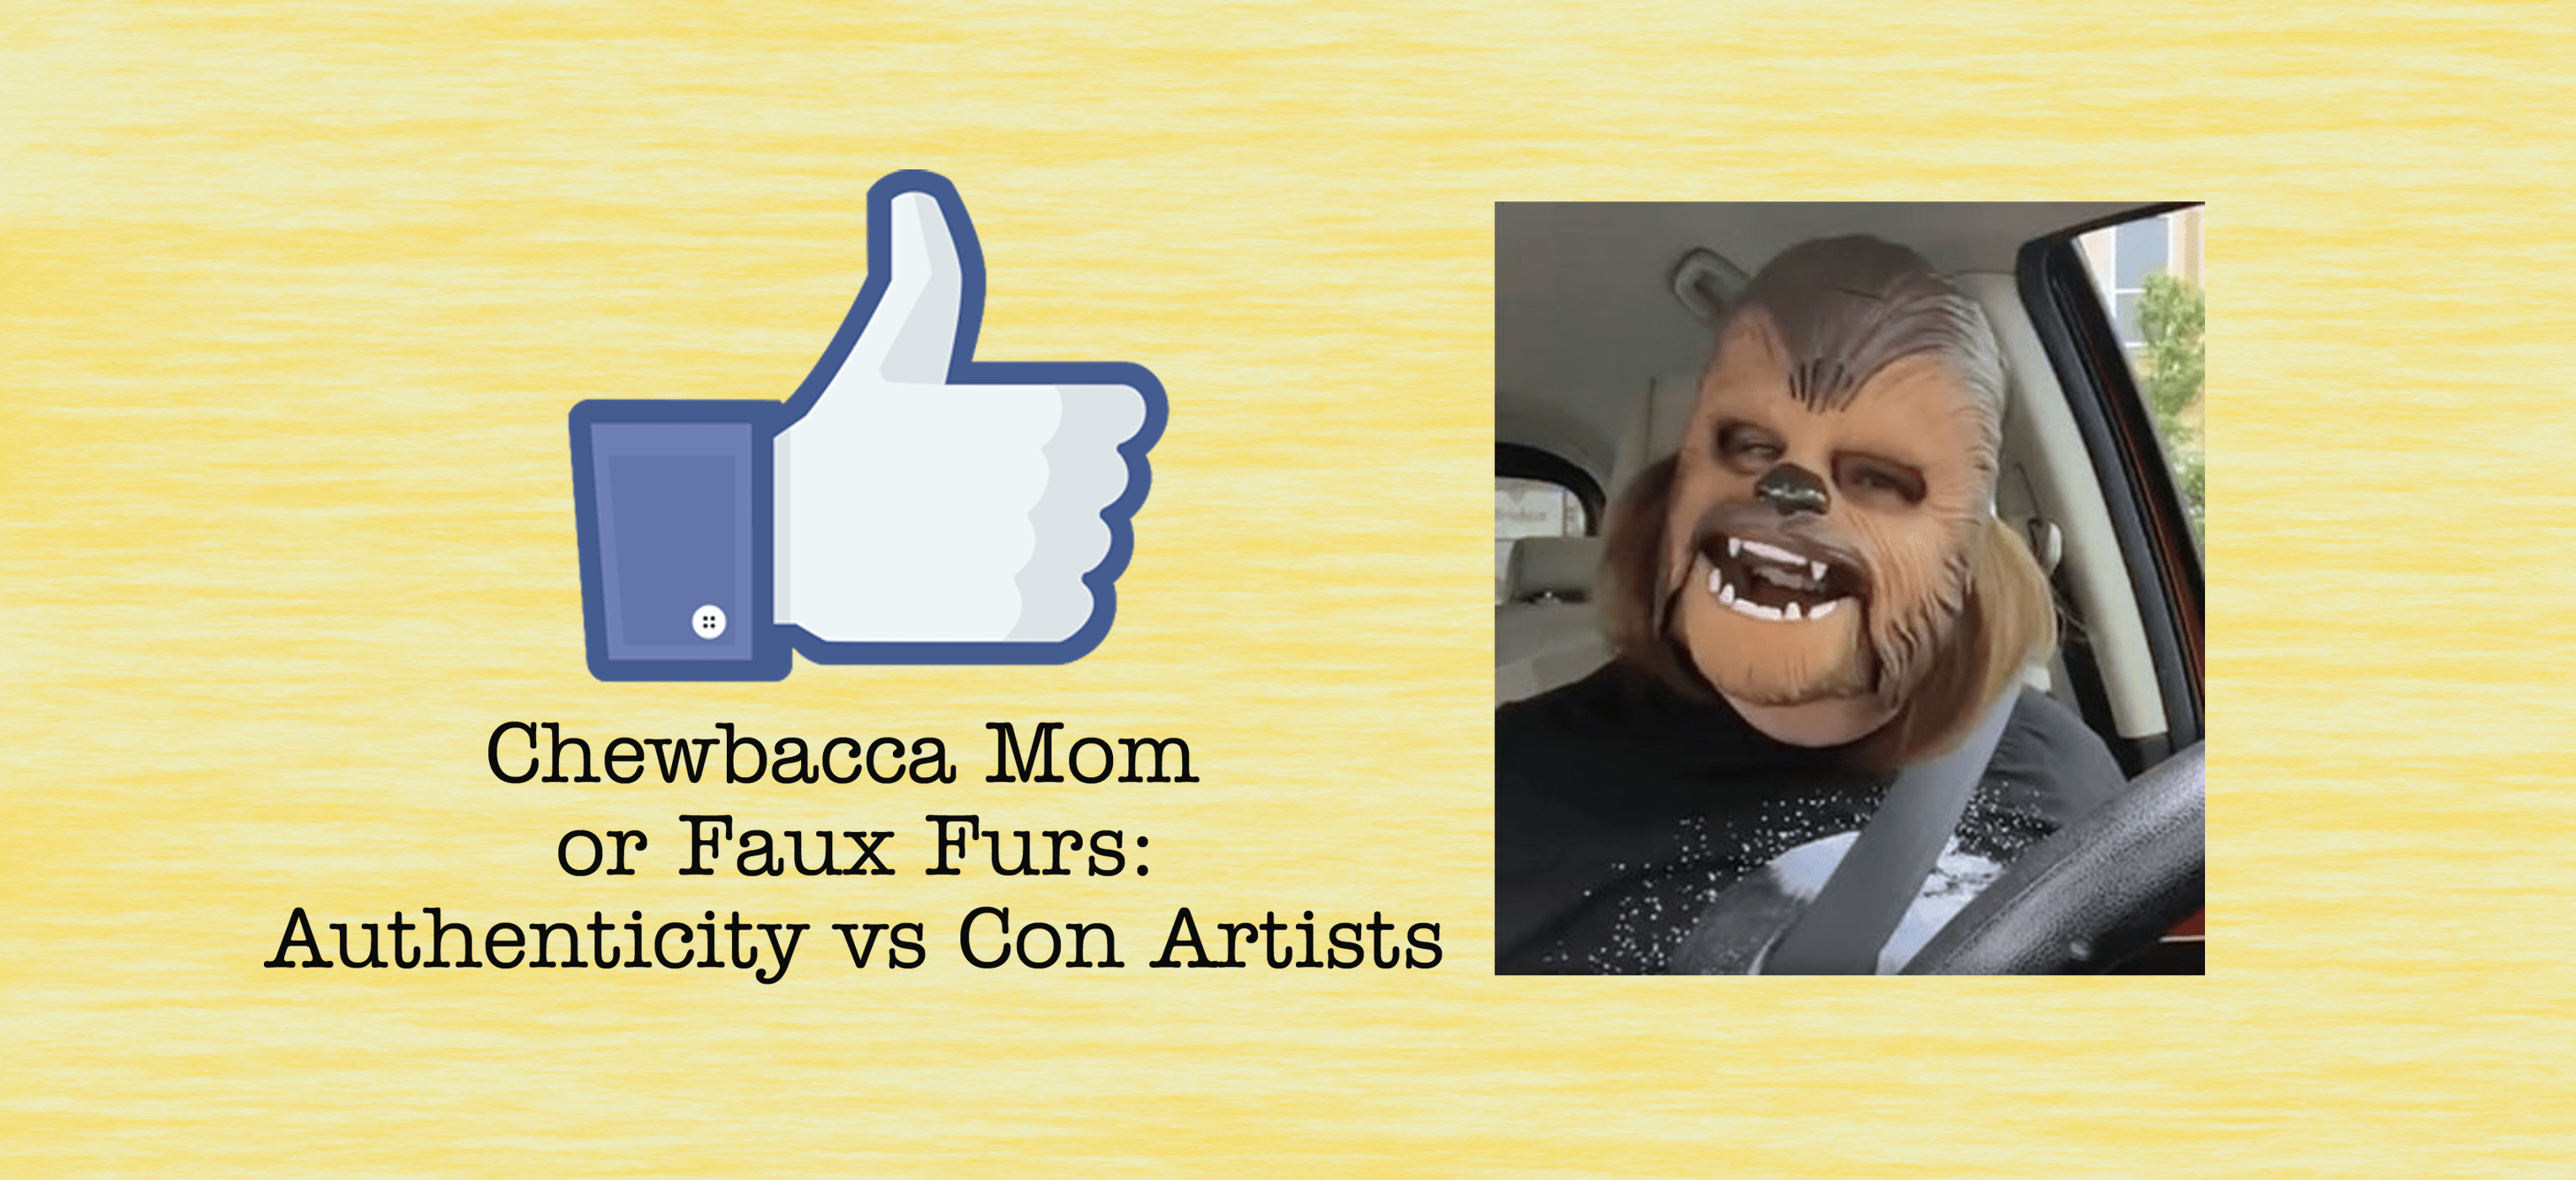 Chewbacca Mom or Faux Furs: authenticity vs con artists.